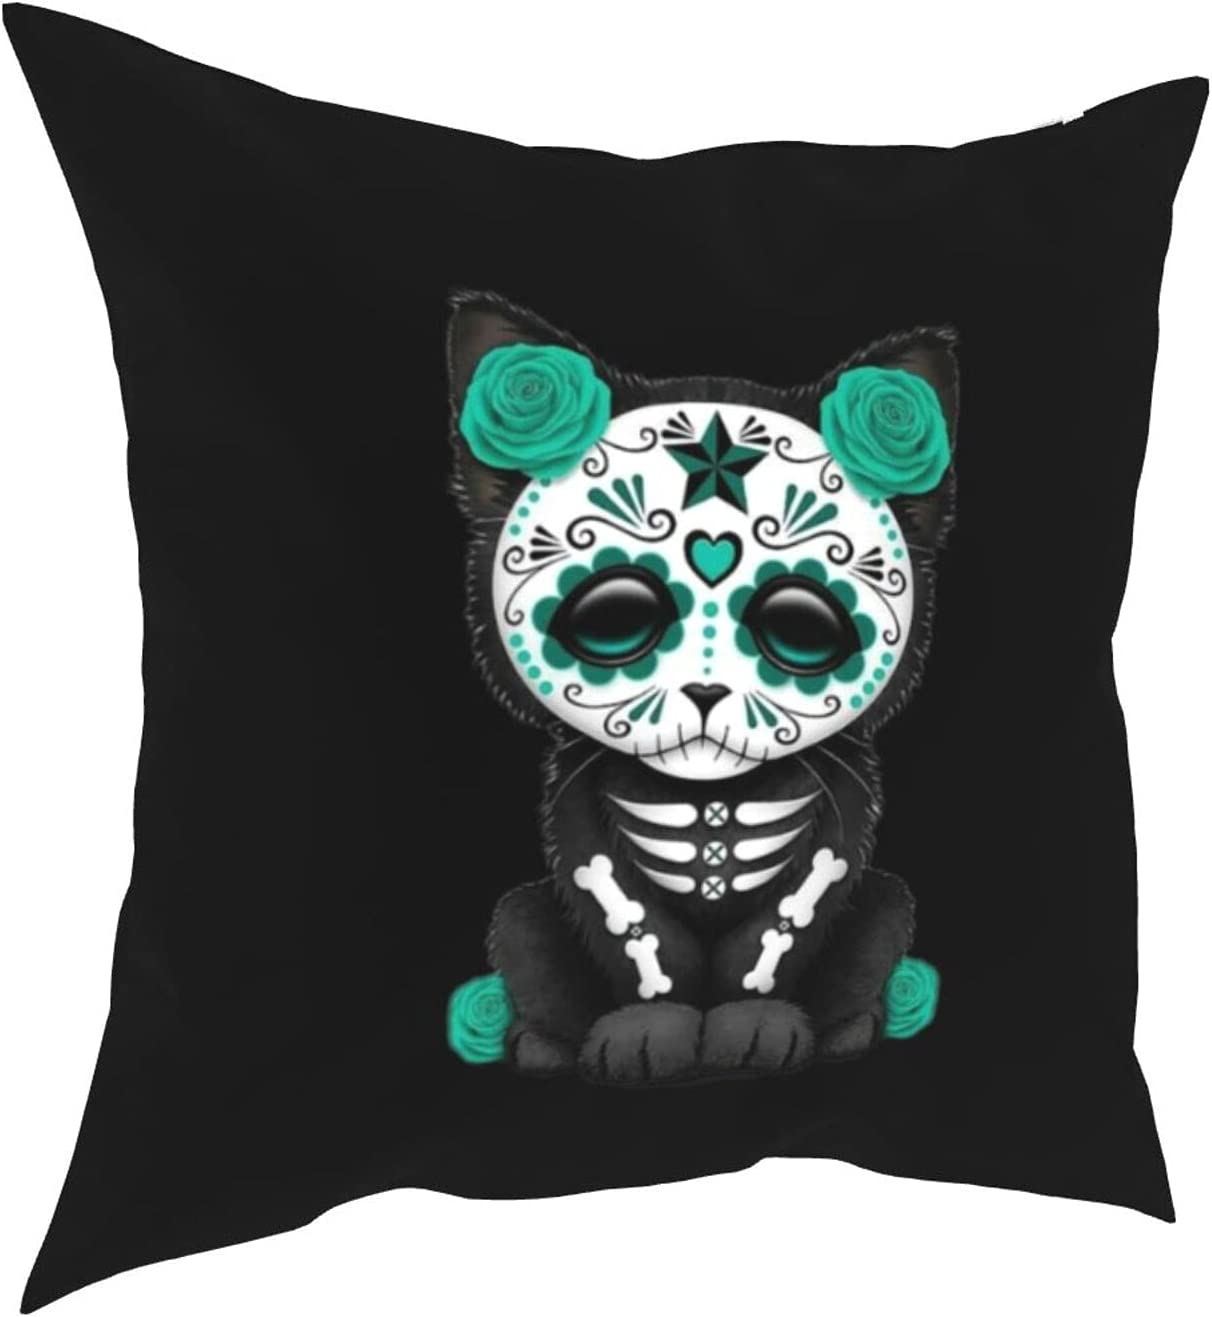 Bxuoe Sugar Skull Kitten Printed Home Decor Throw Pillowcase for Sofa Cushion Cover, Zippered and Double Sided Printing Pillow Case Covers 18X18Inch